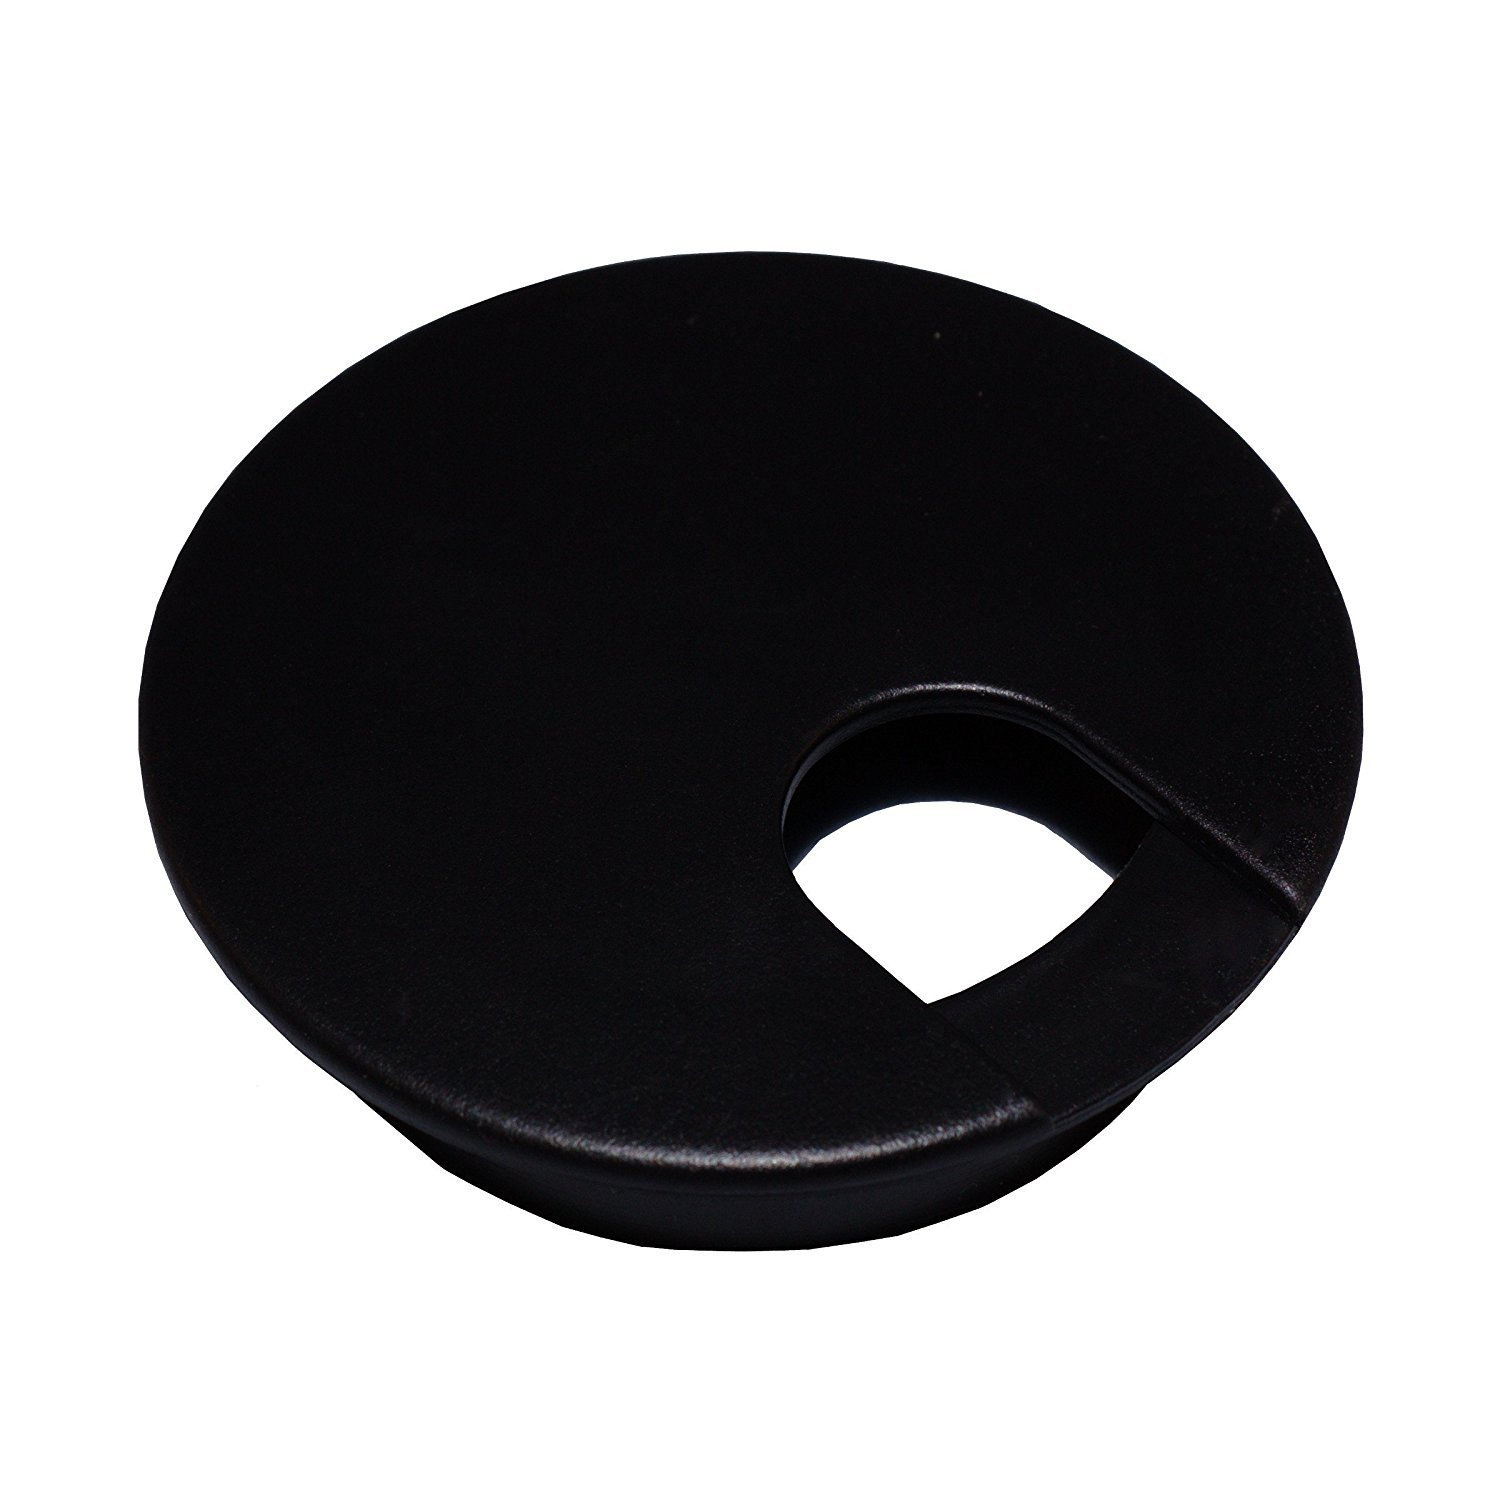 Desk Cord Cable Wire Grommet Black 2 1 2 #1031 5 Desk Grommets